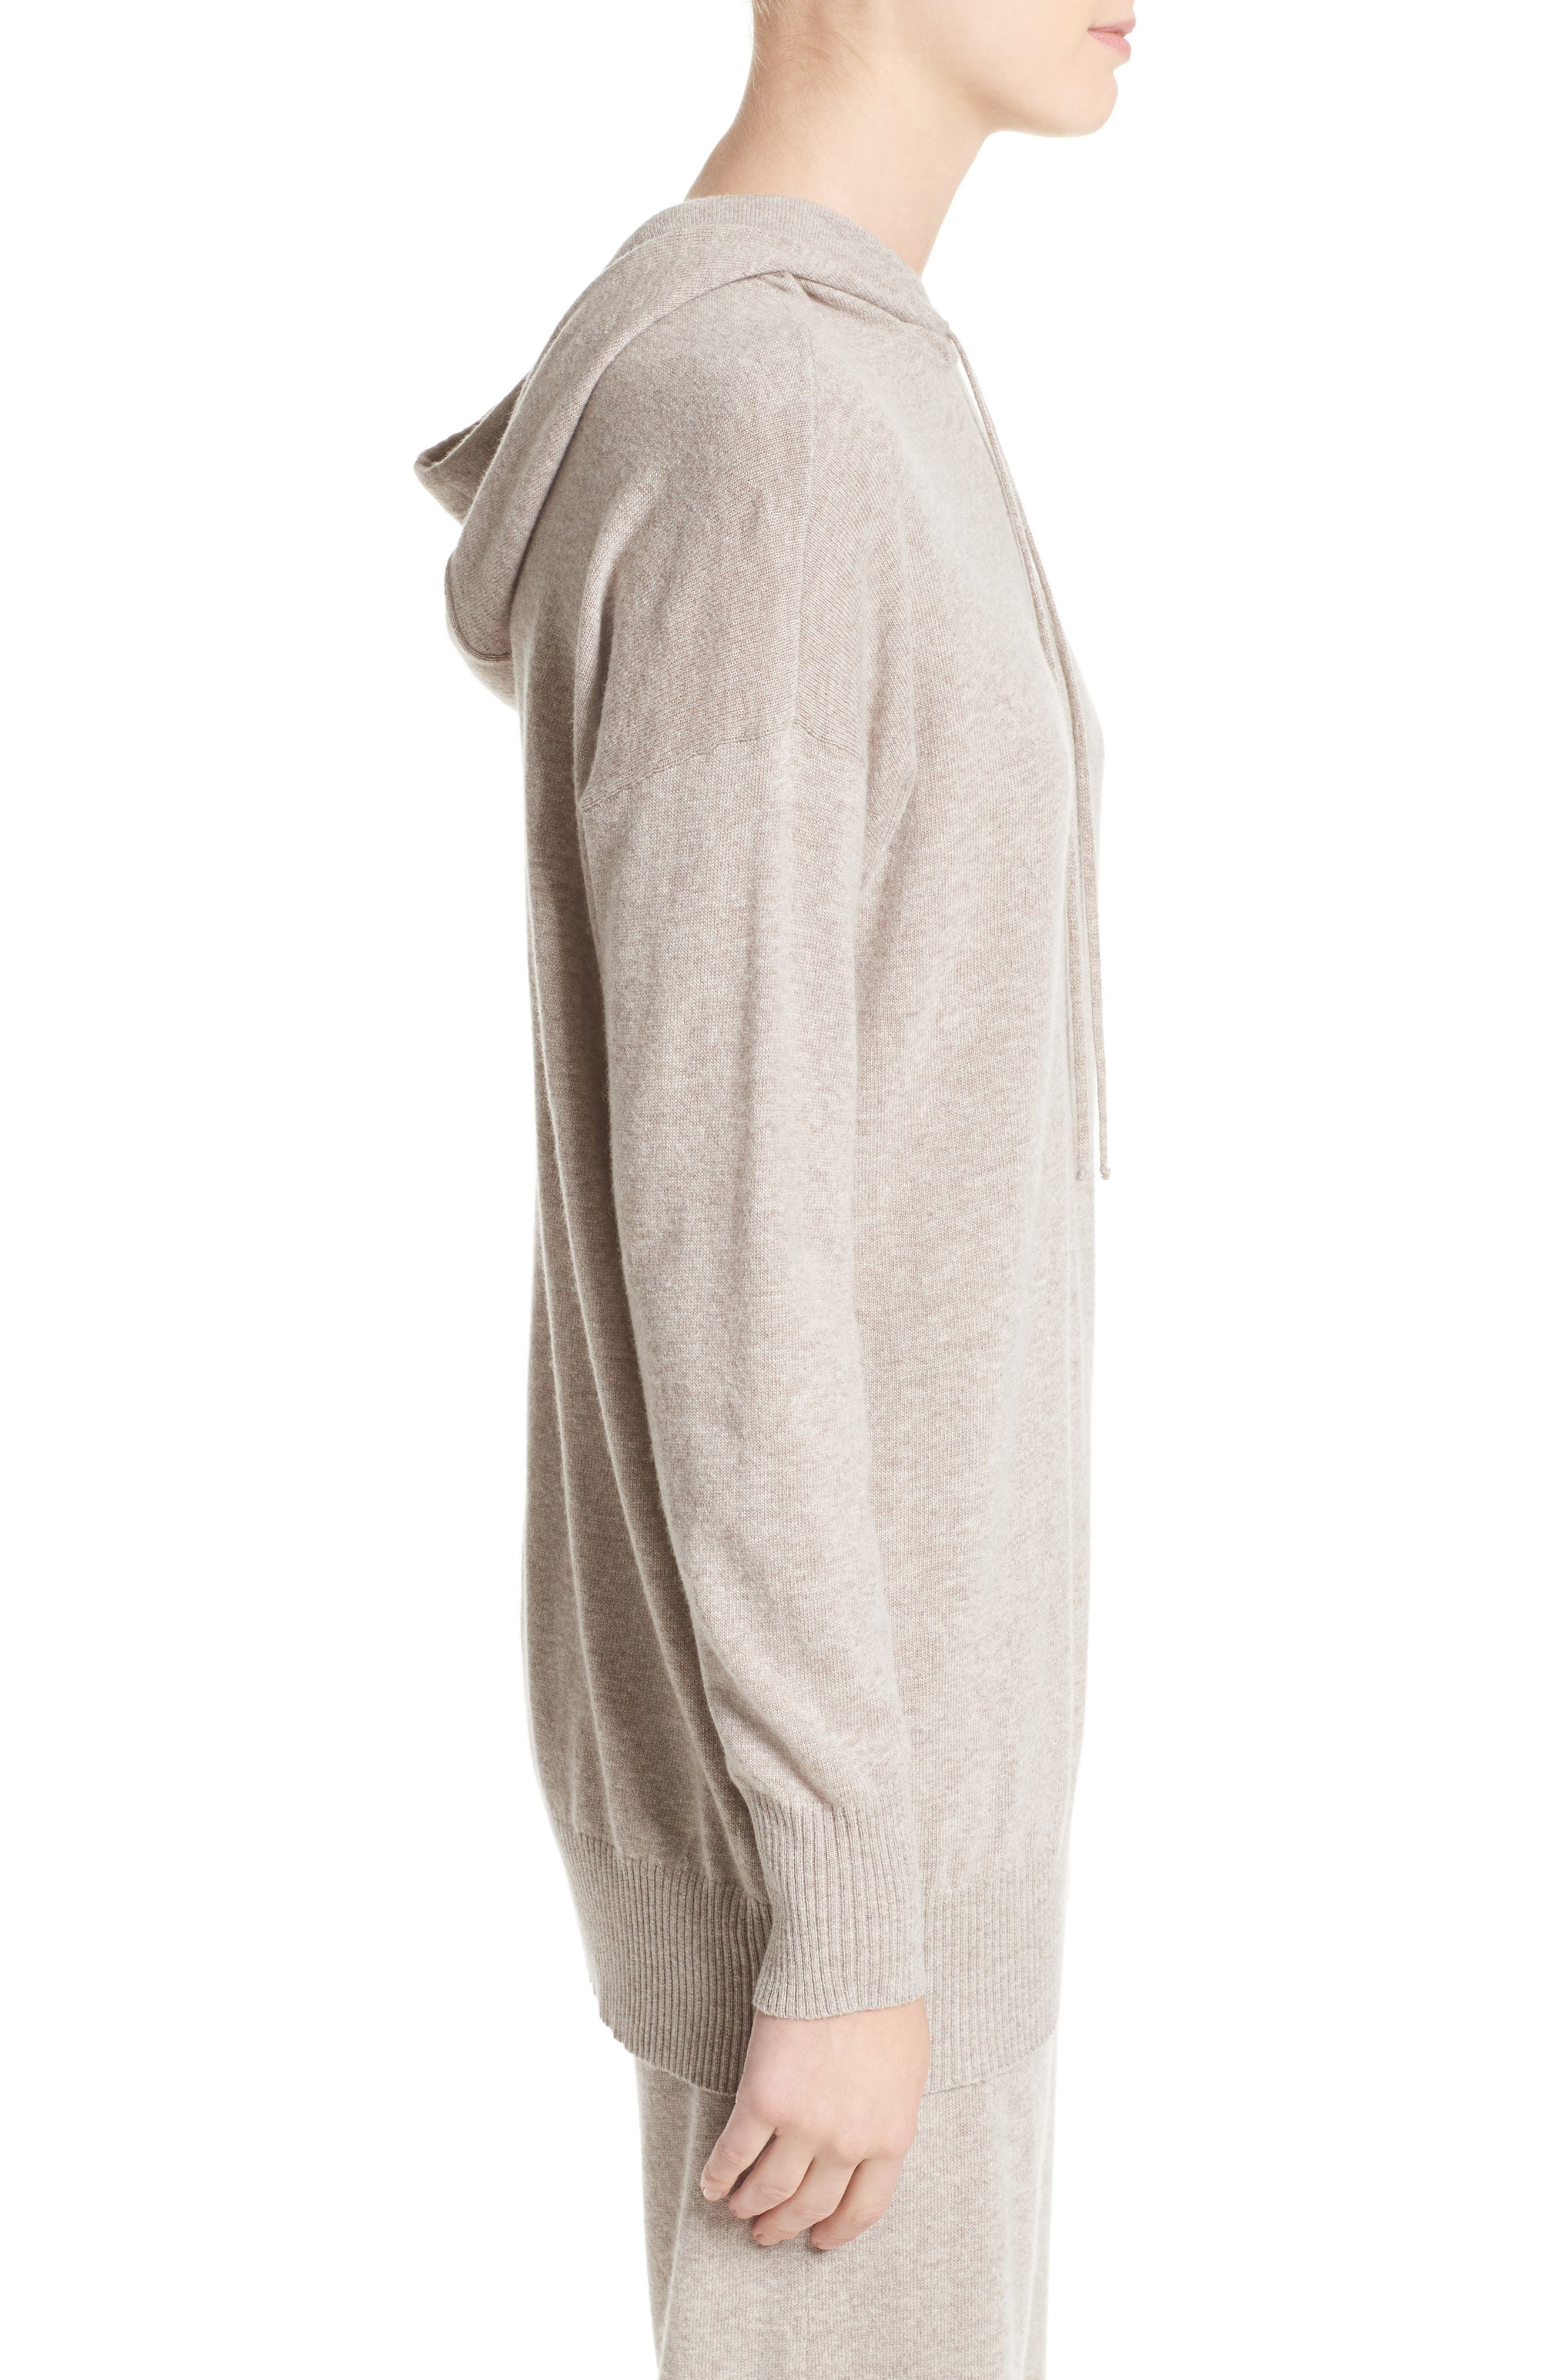 Nitra Wool & Cashmere Hooded Sweater,                             Alternate thumbnail 3, color,                             236